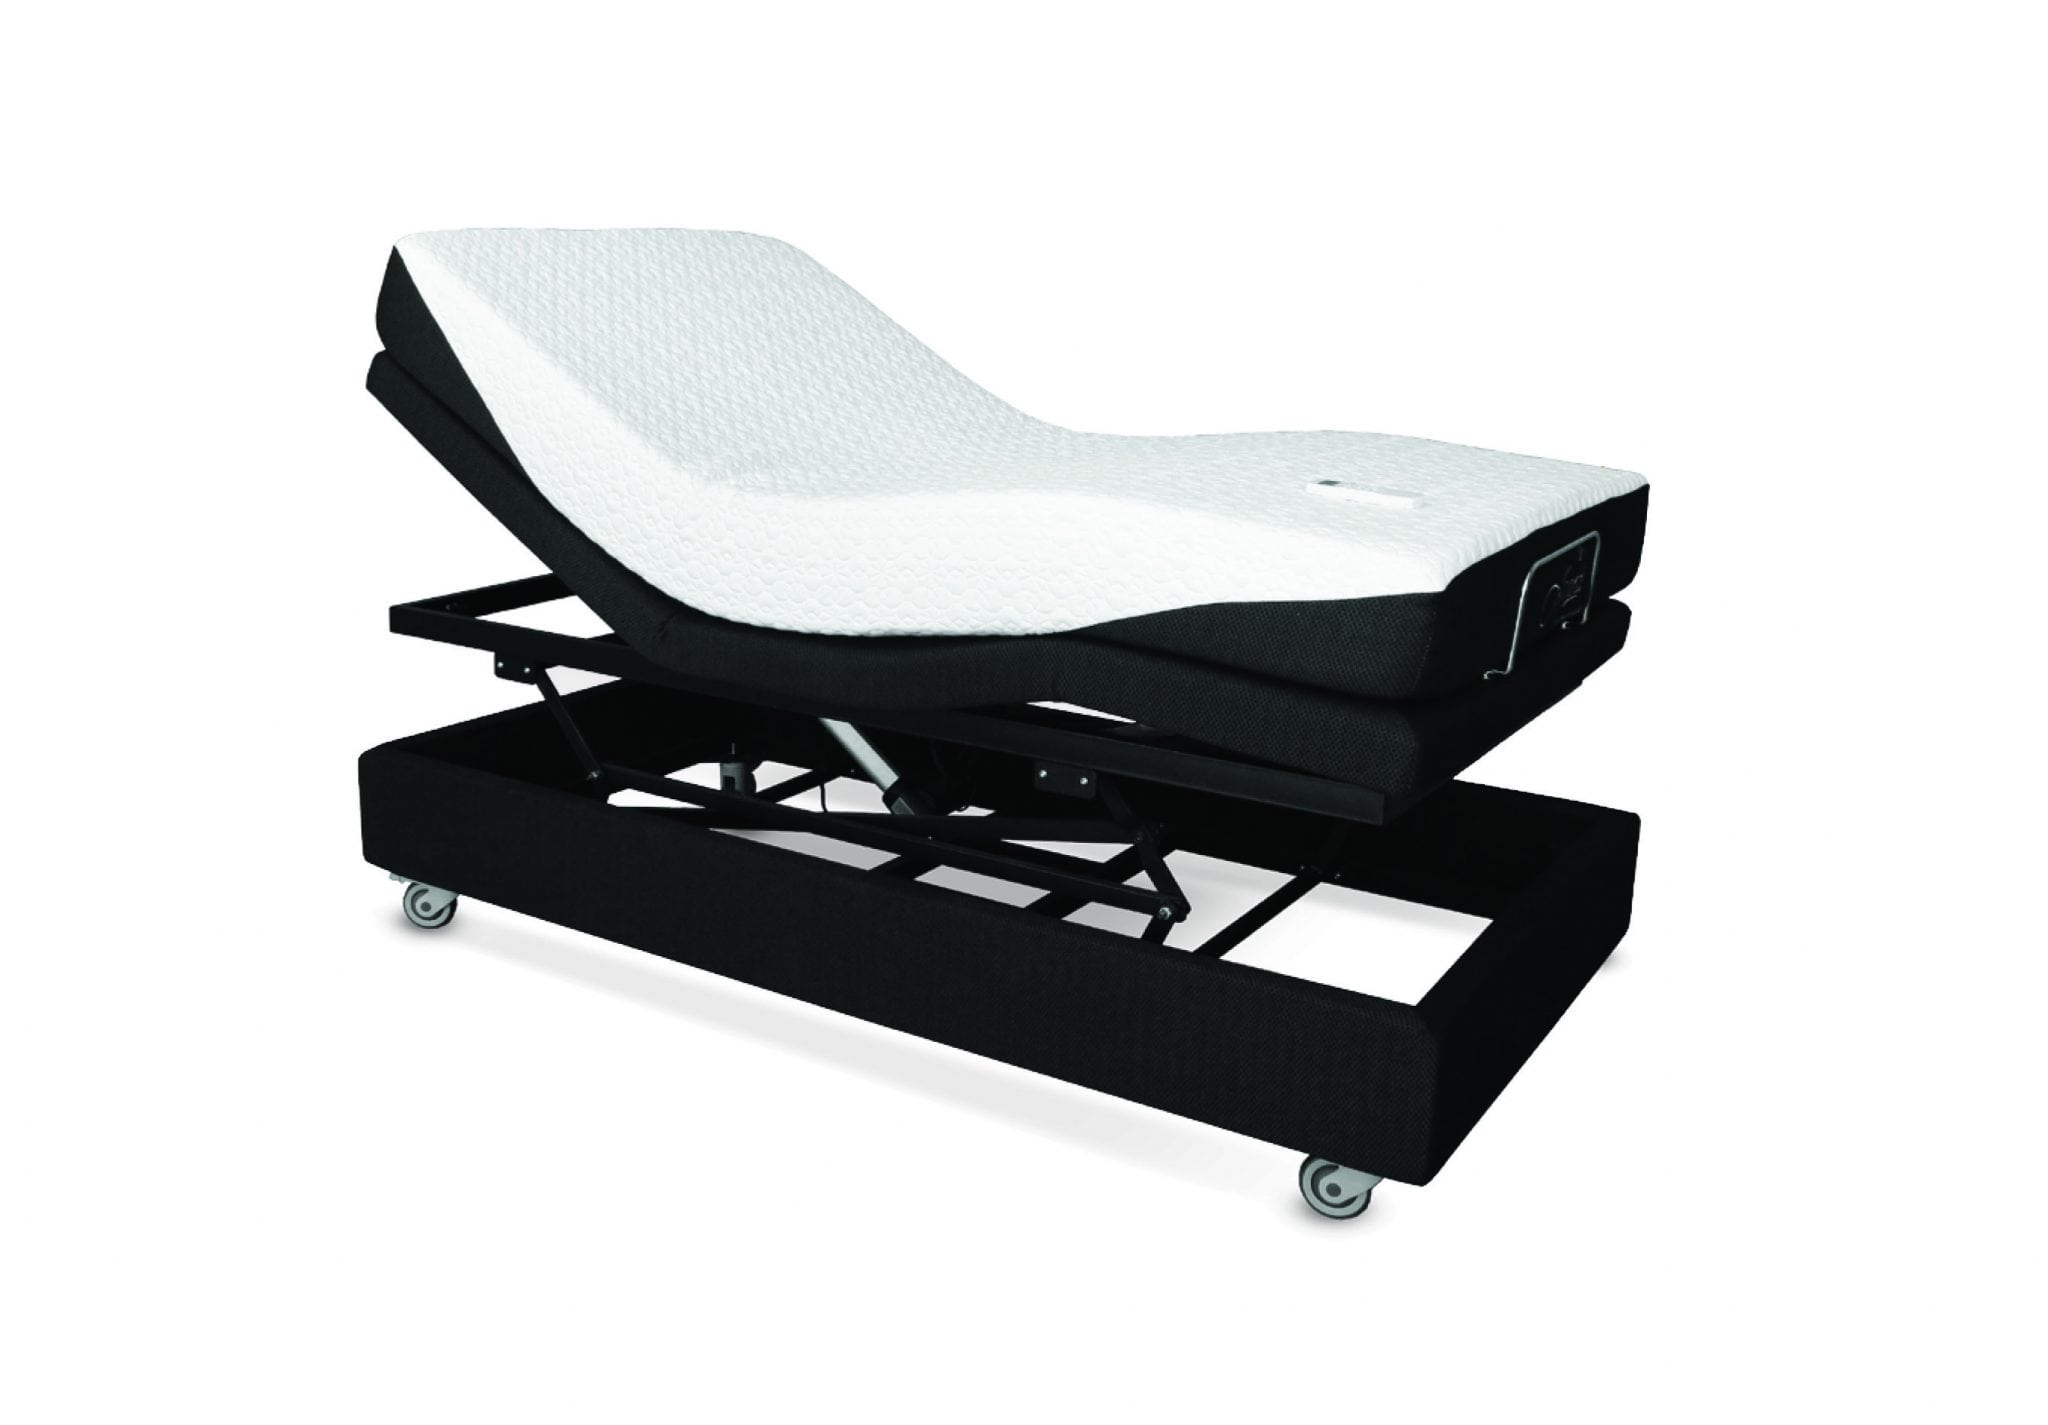 Split Queen Adjustable Bed >> Smartflex 3 Adjustable Bed Split Queen C W Cool Balance Mattress